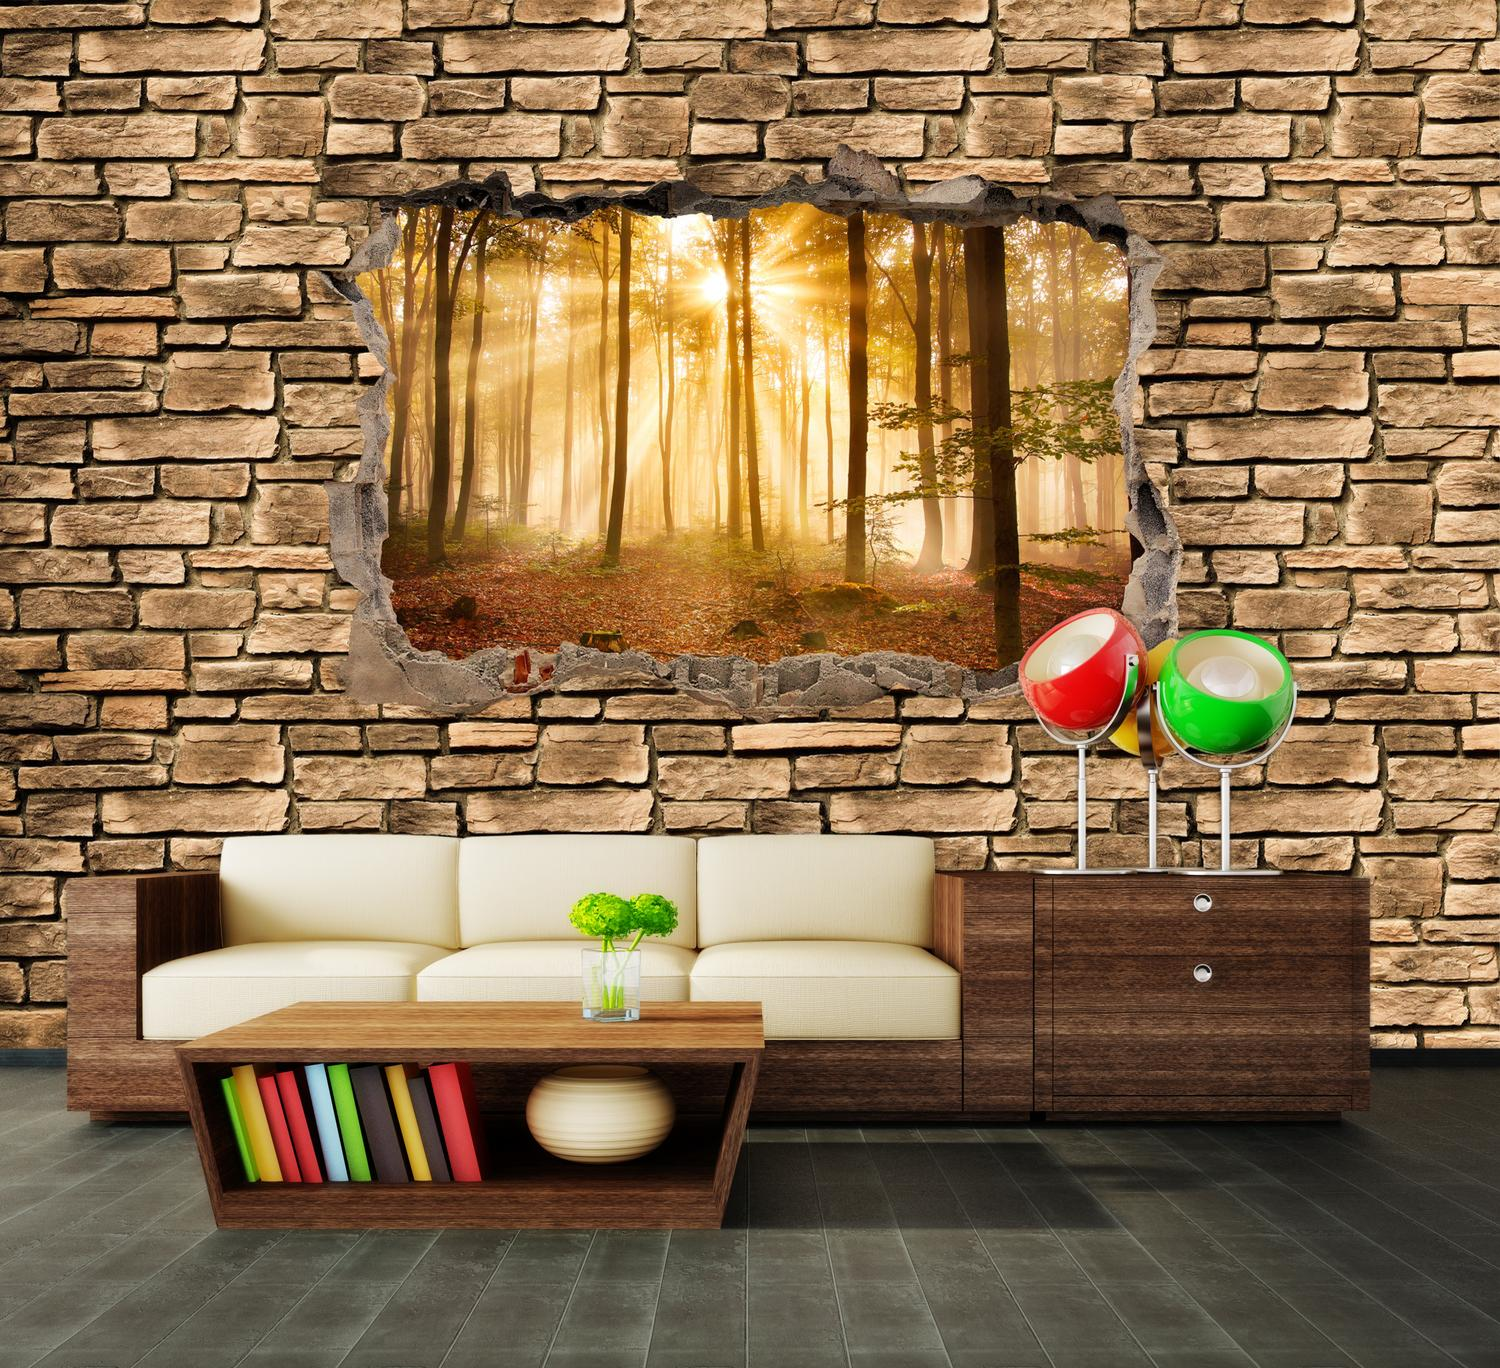 fototapete 3d wald am morgen steinmauer vlies tapete wandtapete ebay. Black Bedroom Furniture Sets. Home Design Ideas